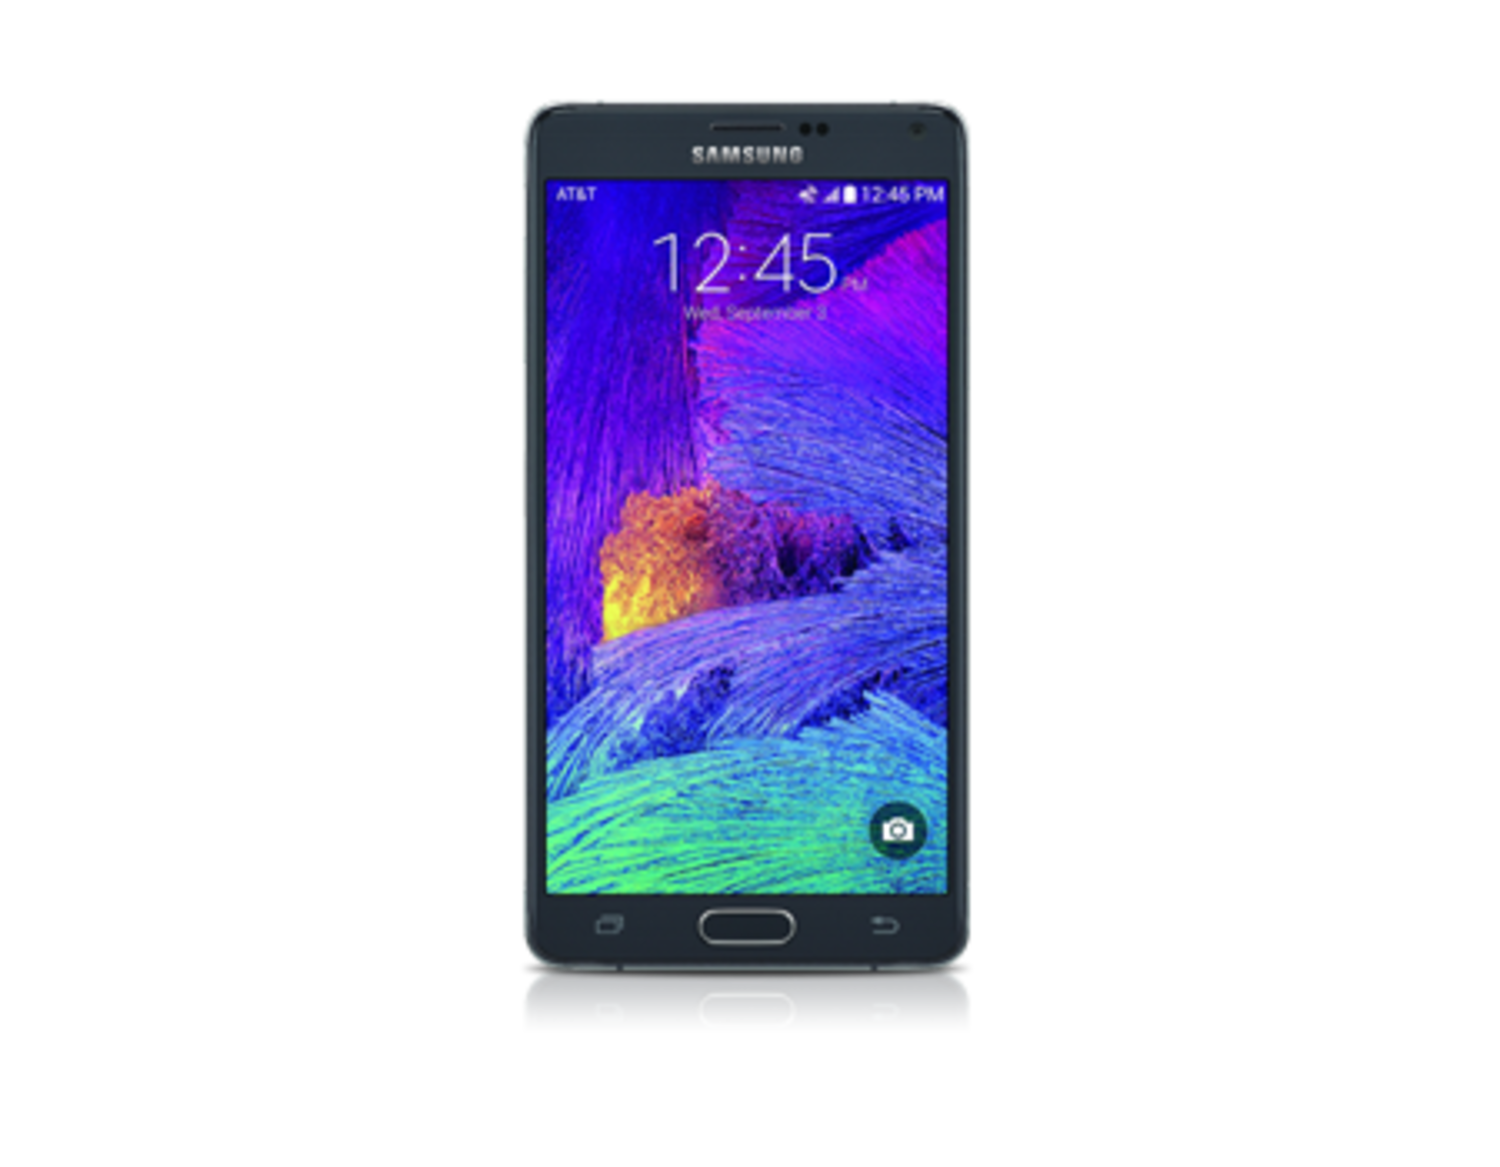 samsung-galaxy note 4-charcoal black-450x350.png